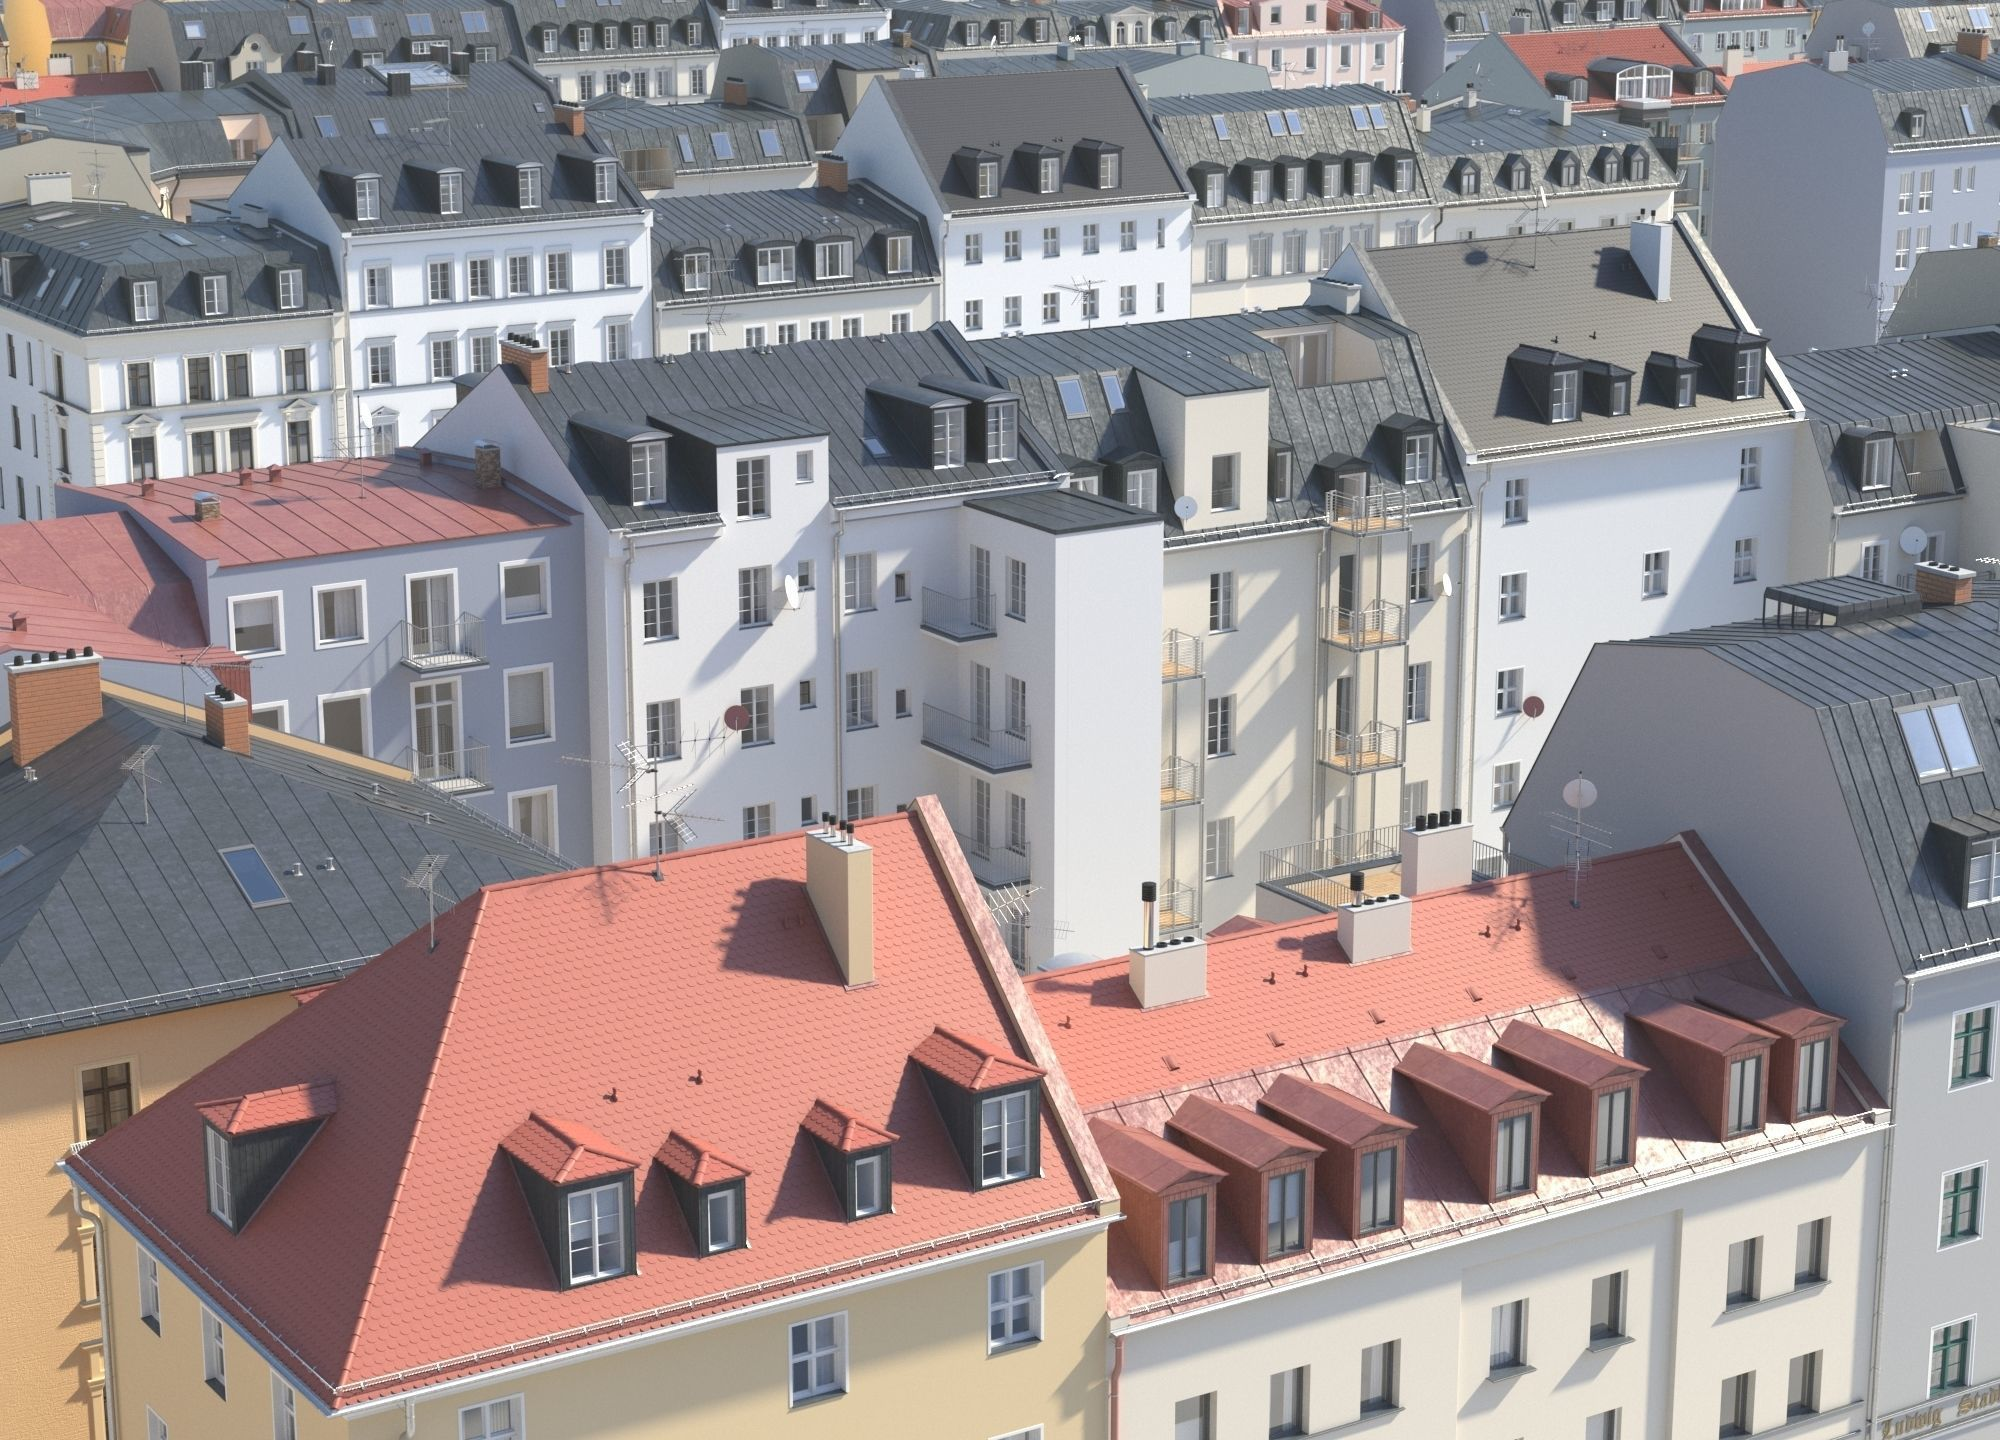 City Building Collection - Pack of 22 detailed town houses